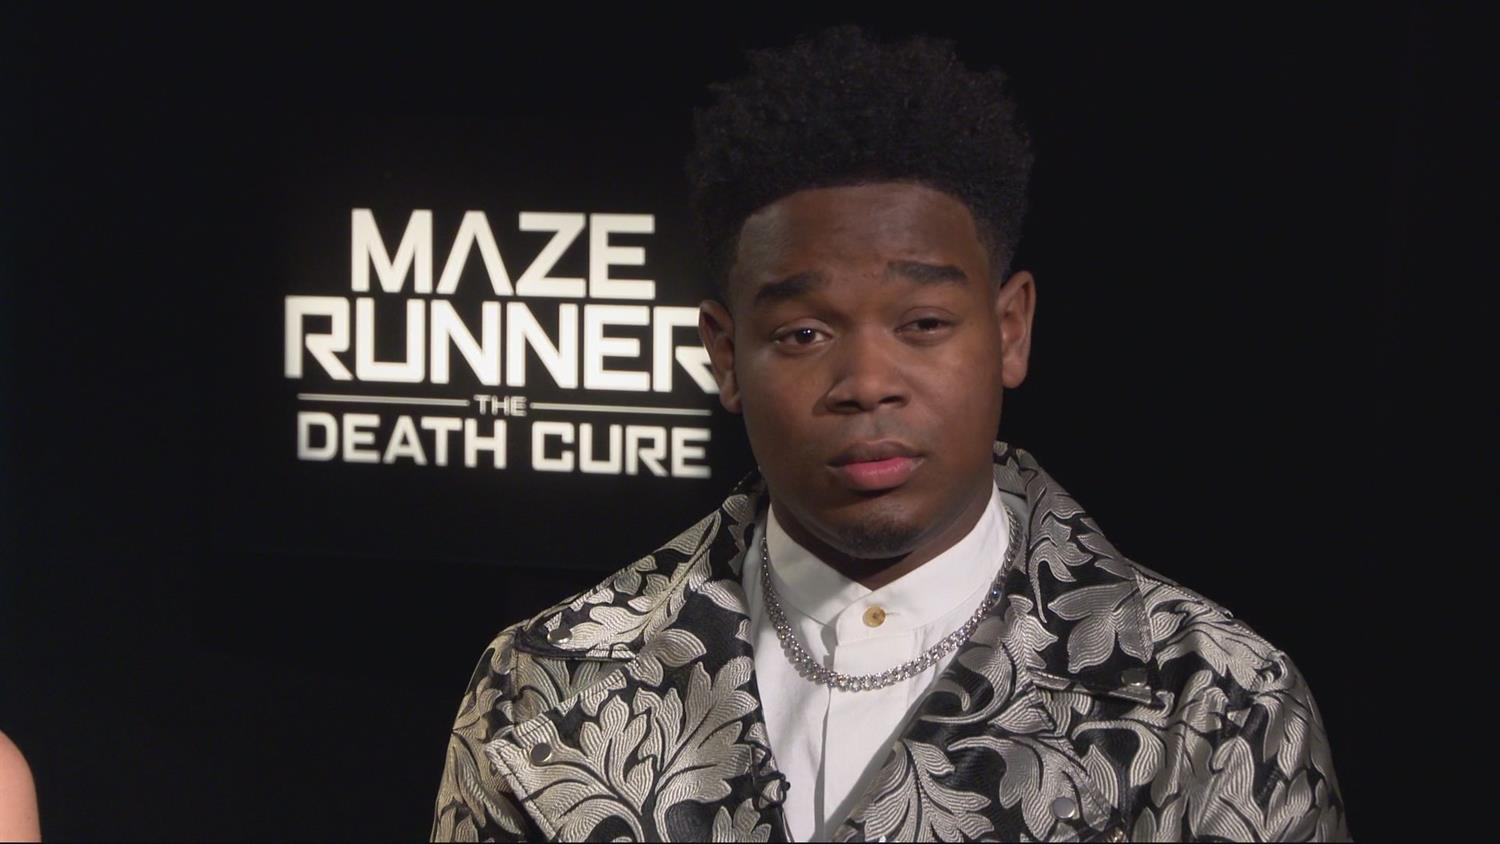 The Maze Runner: The Death Cure Cast Love Pac-Man, Explain Film Plots Badly